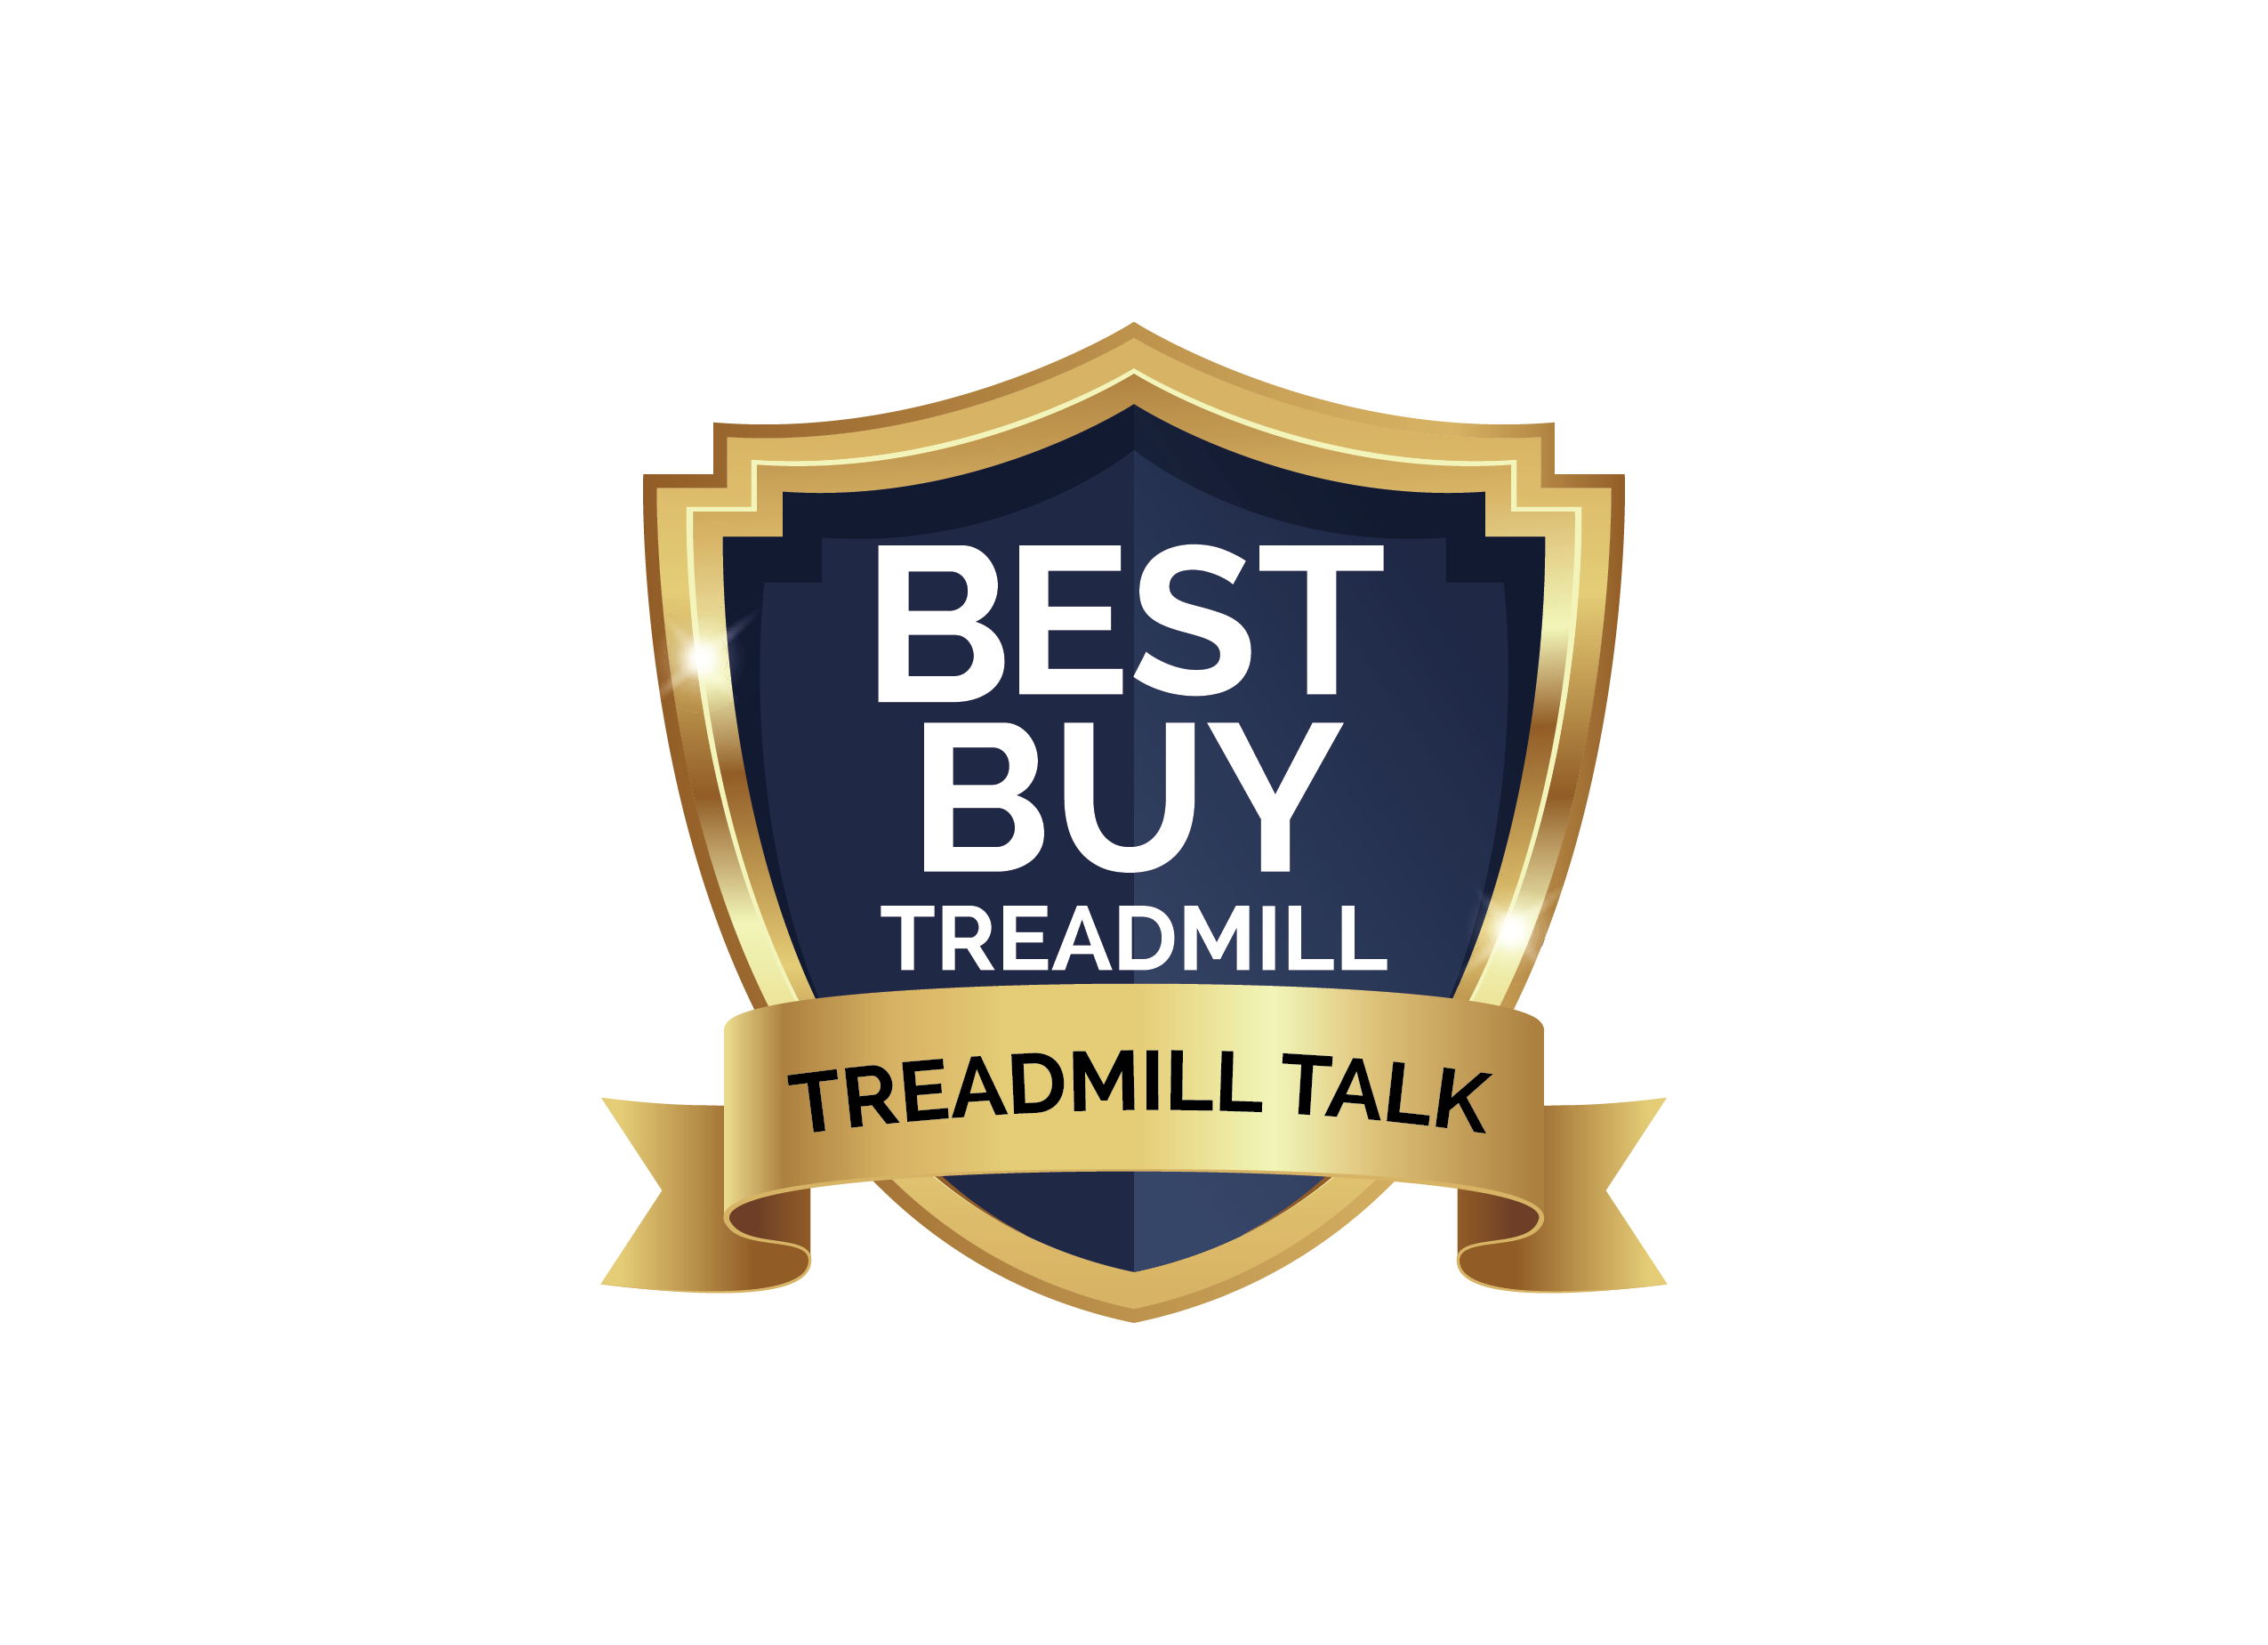 Treadmill Talk Best Buy